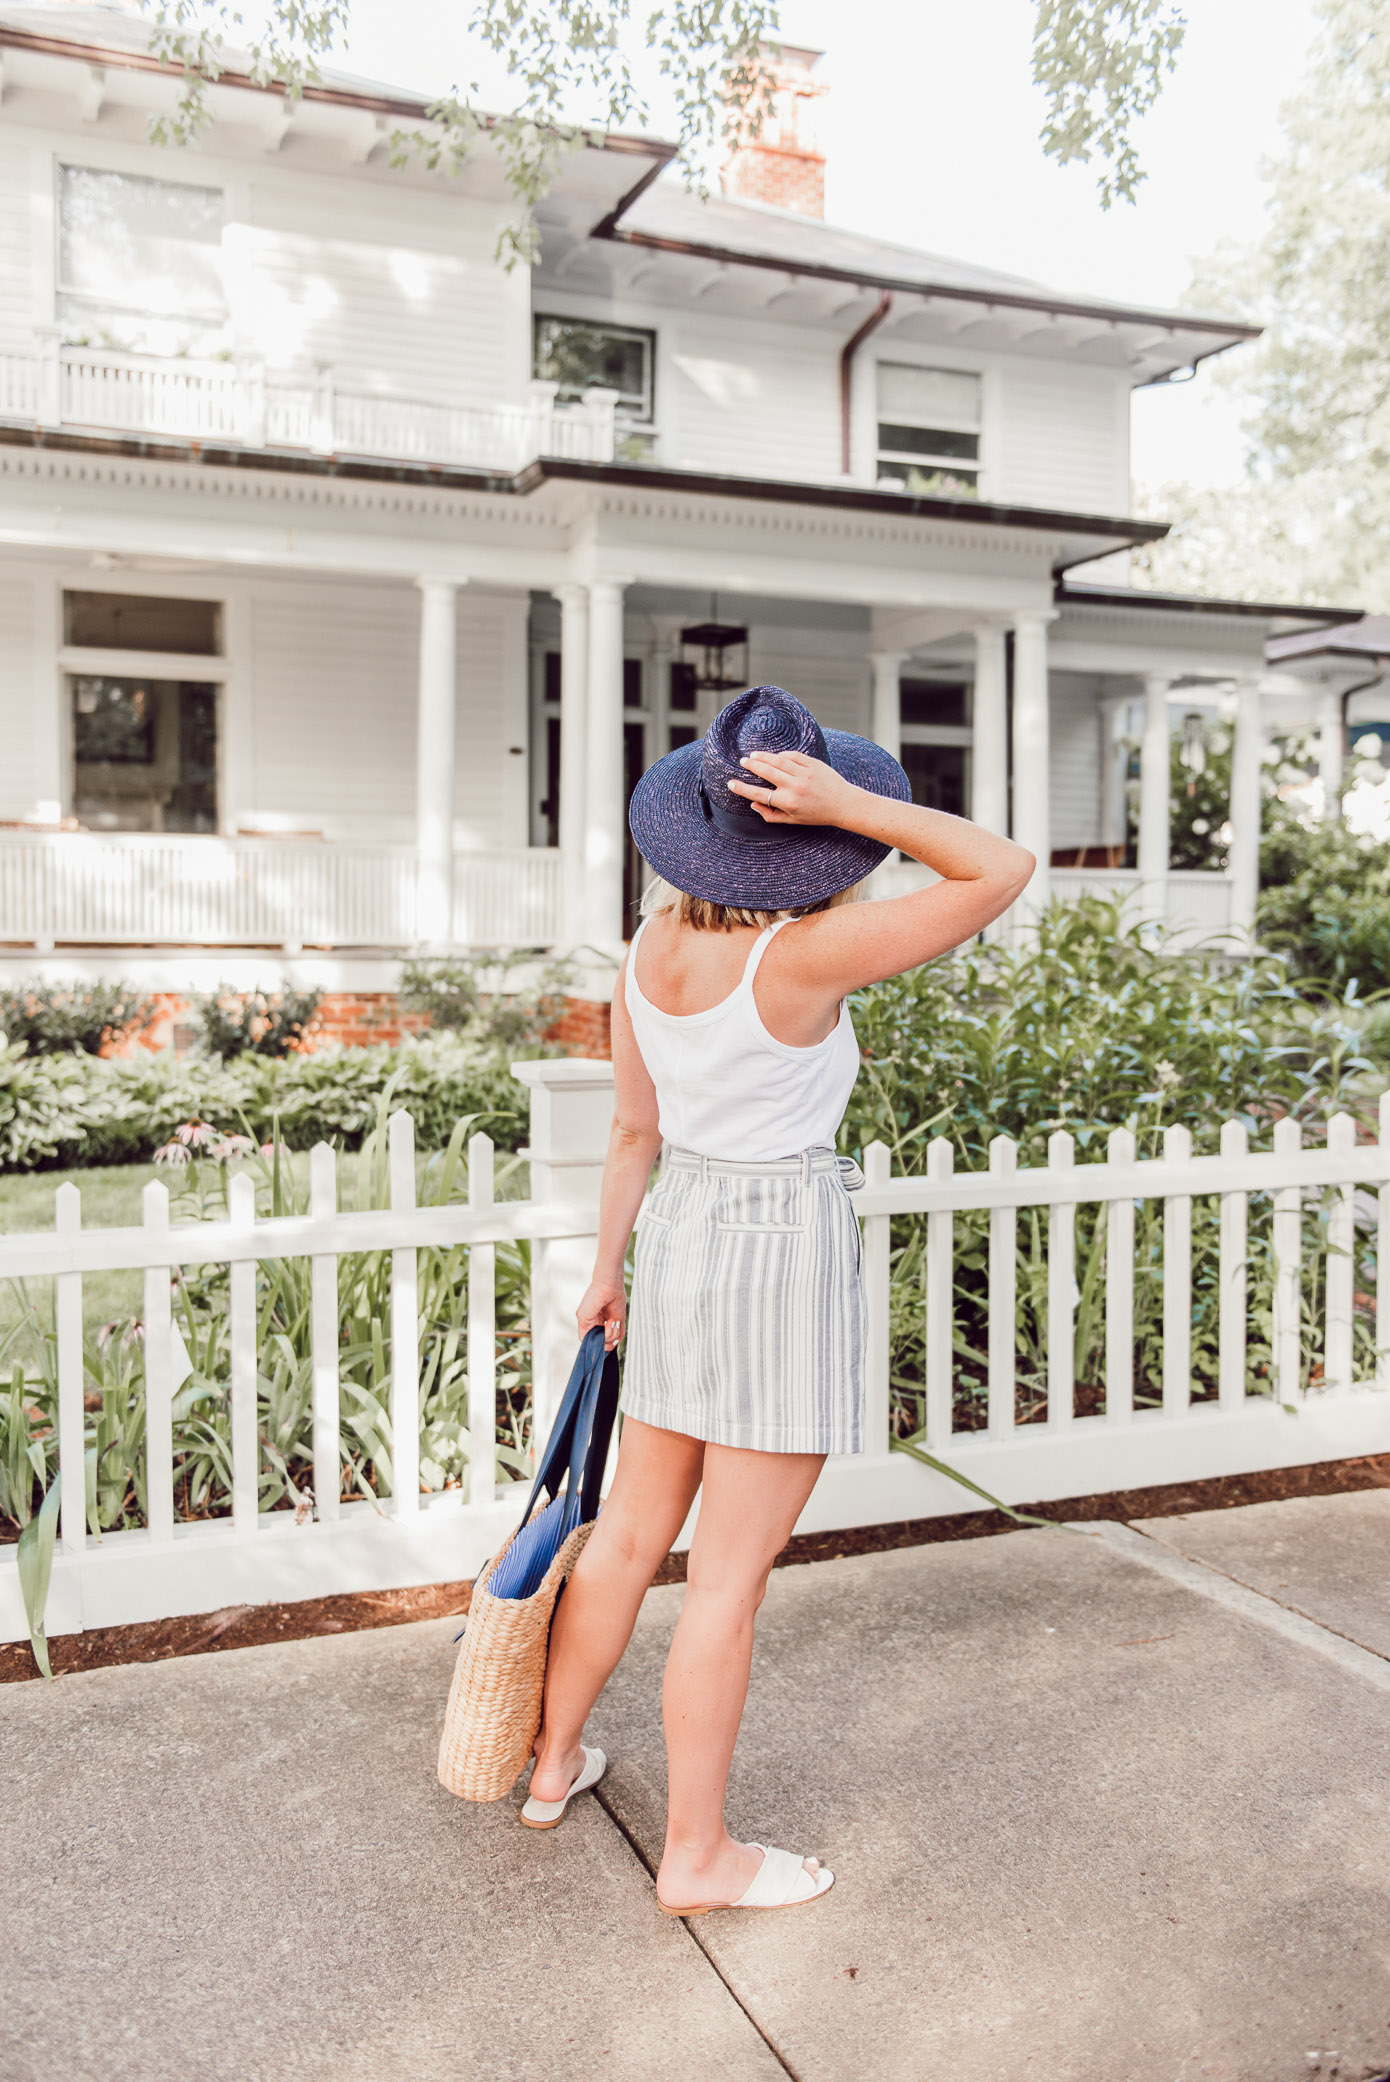 Blue and White Summer Outfit Idea, Large Straw Shopper Tote   Ft. Everlane, Sanctuary, Joules, Brixton   Louella Reese